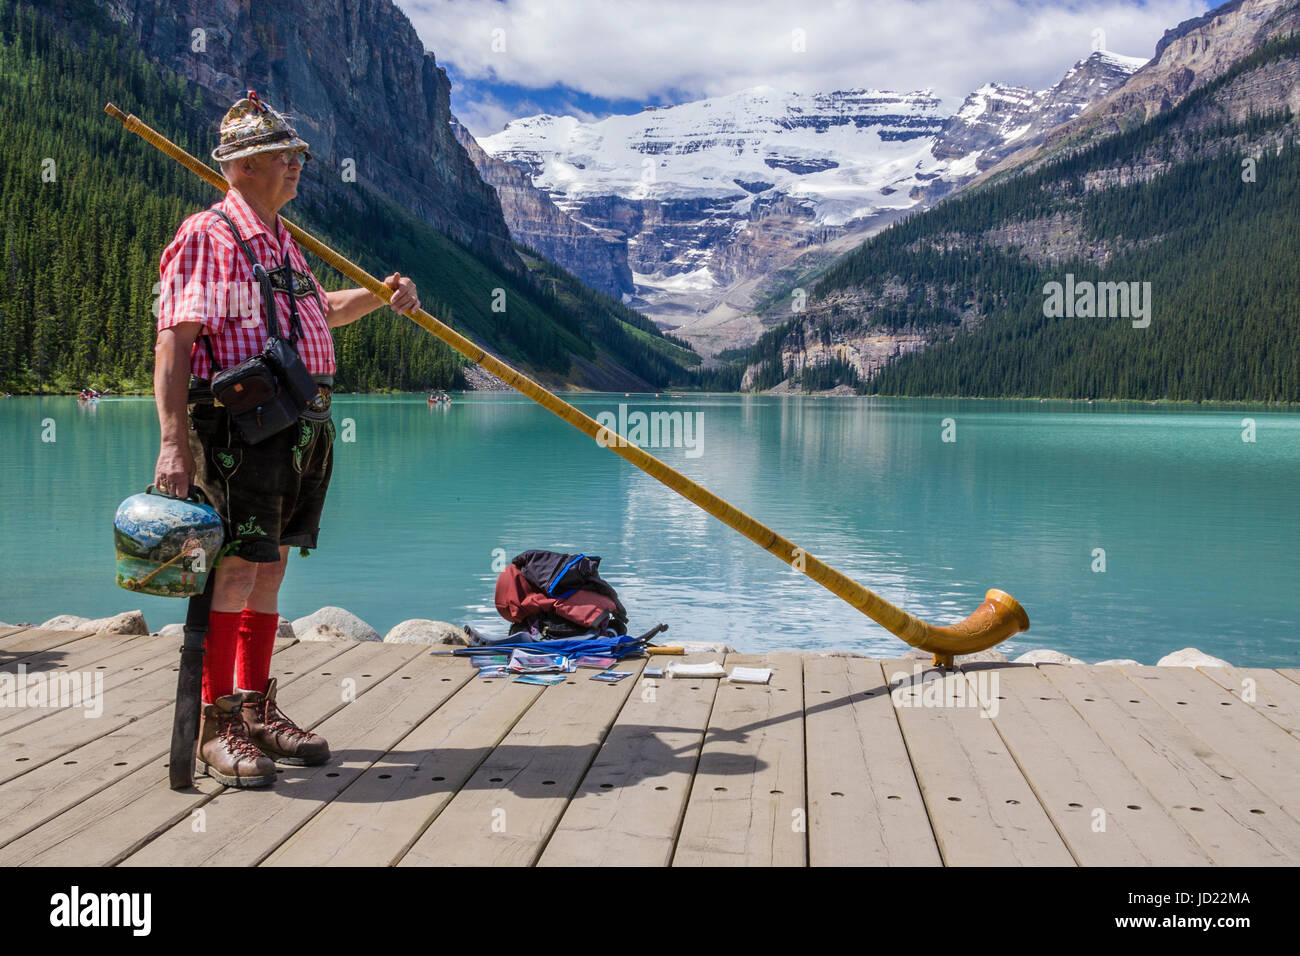 Alp Horn player at Chateau Lake Louise in Banff National Park, Alberta, Canada. - Stock Image